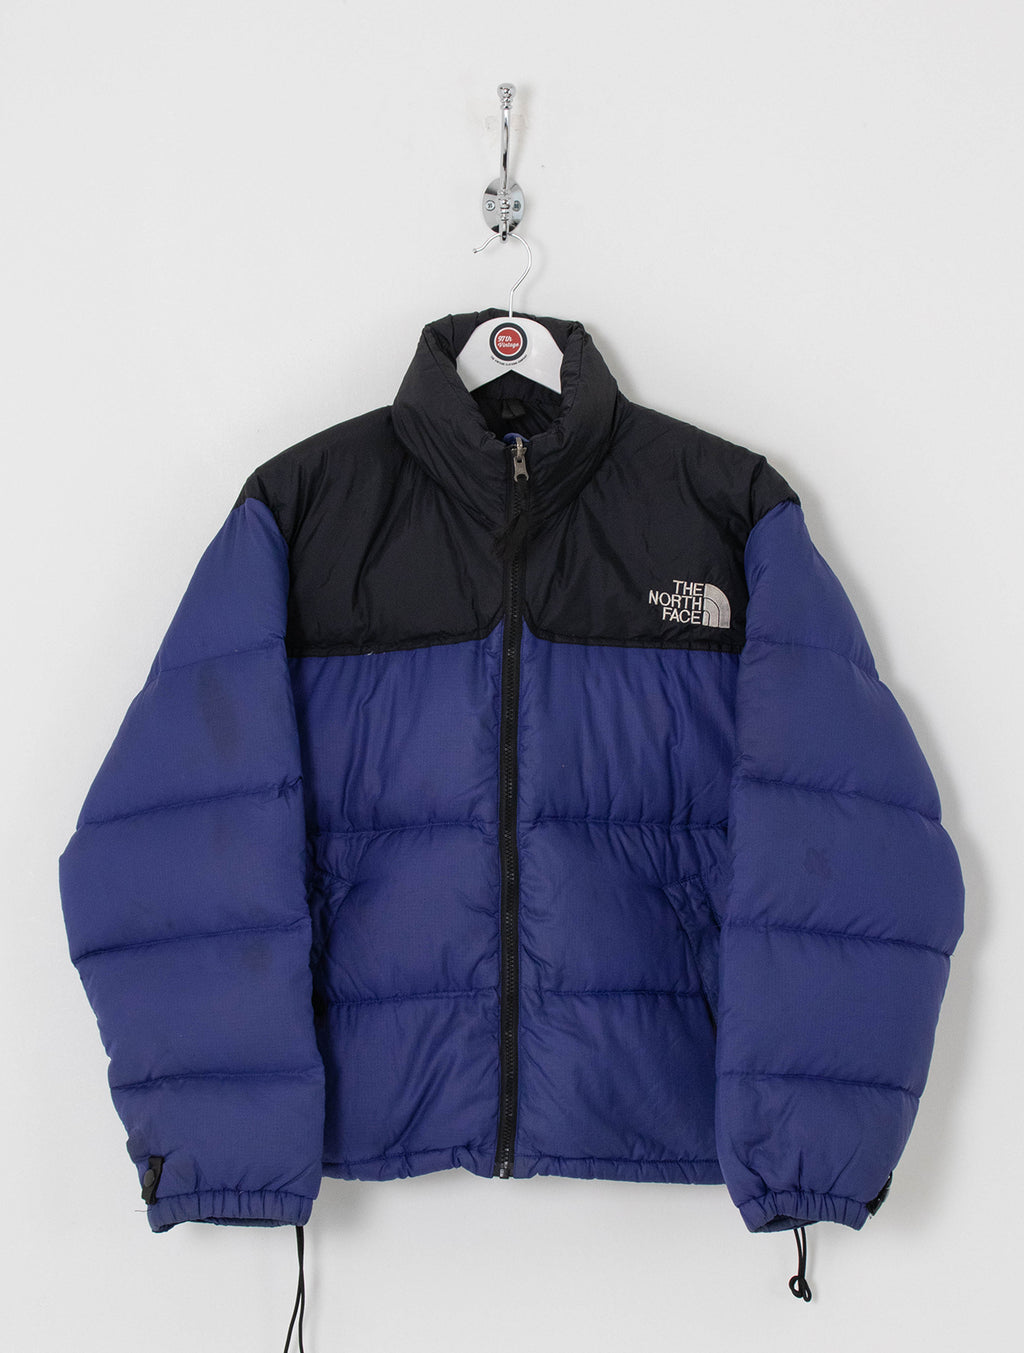 The North Face 700 Nuptse Puffer Jacket (S)